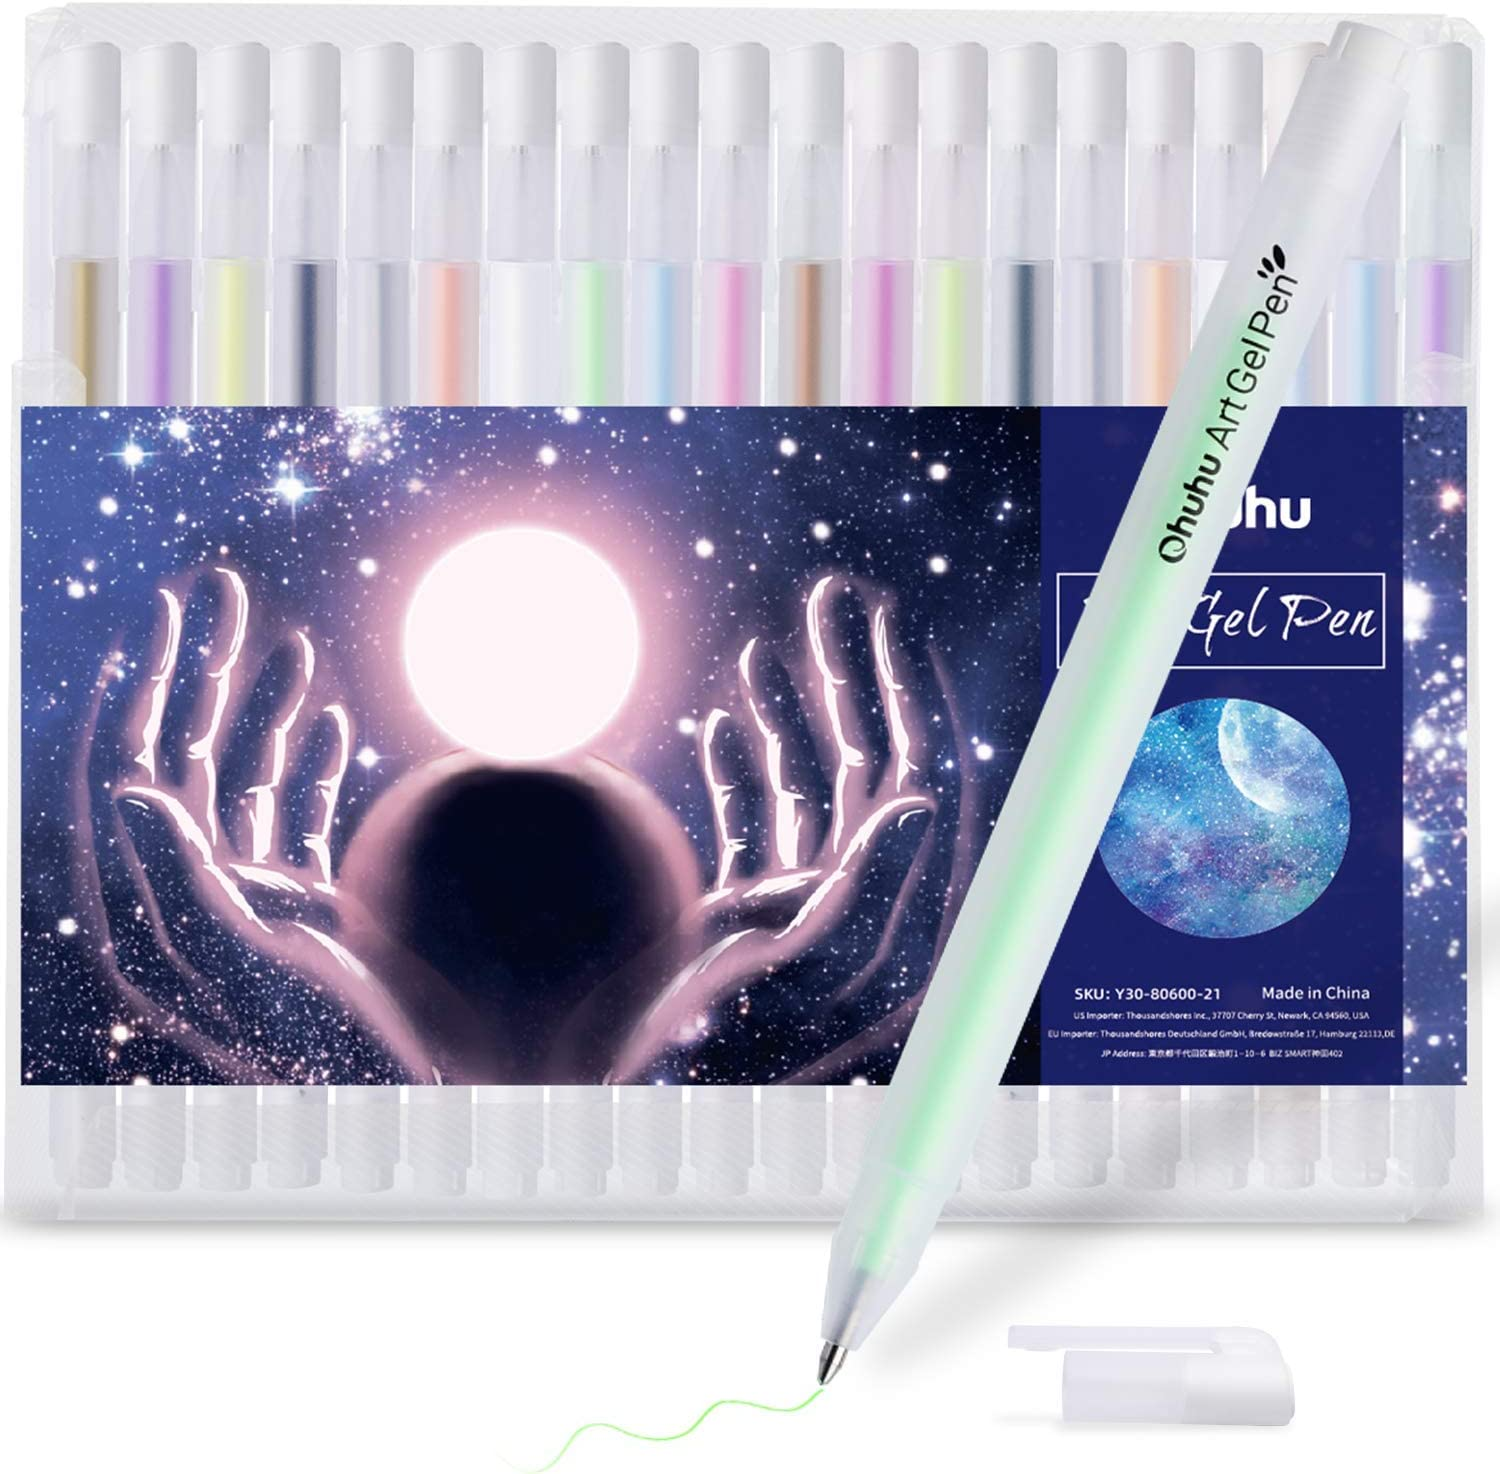 20-Pack 20 Pack Highlighter Gel Pen Set Neon Color Gel Pens for Cards DIY and Black Paper Drawing Sketching Gold Silver Adult Coloring White Pens for Highlighting on Markers Colored Pencils Watercolor Paintings Ohuhu 10 Colors White